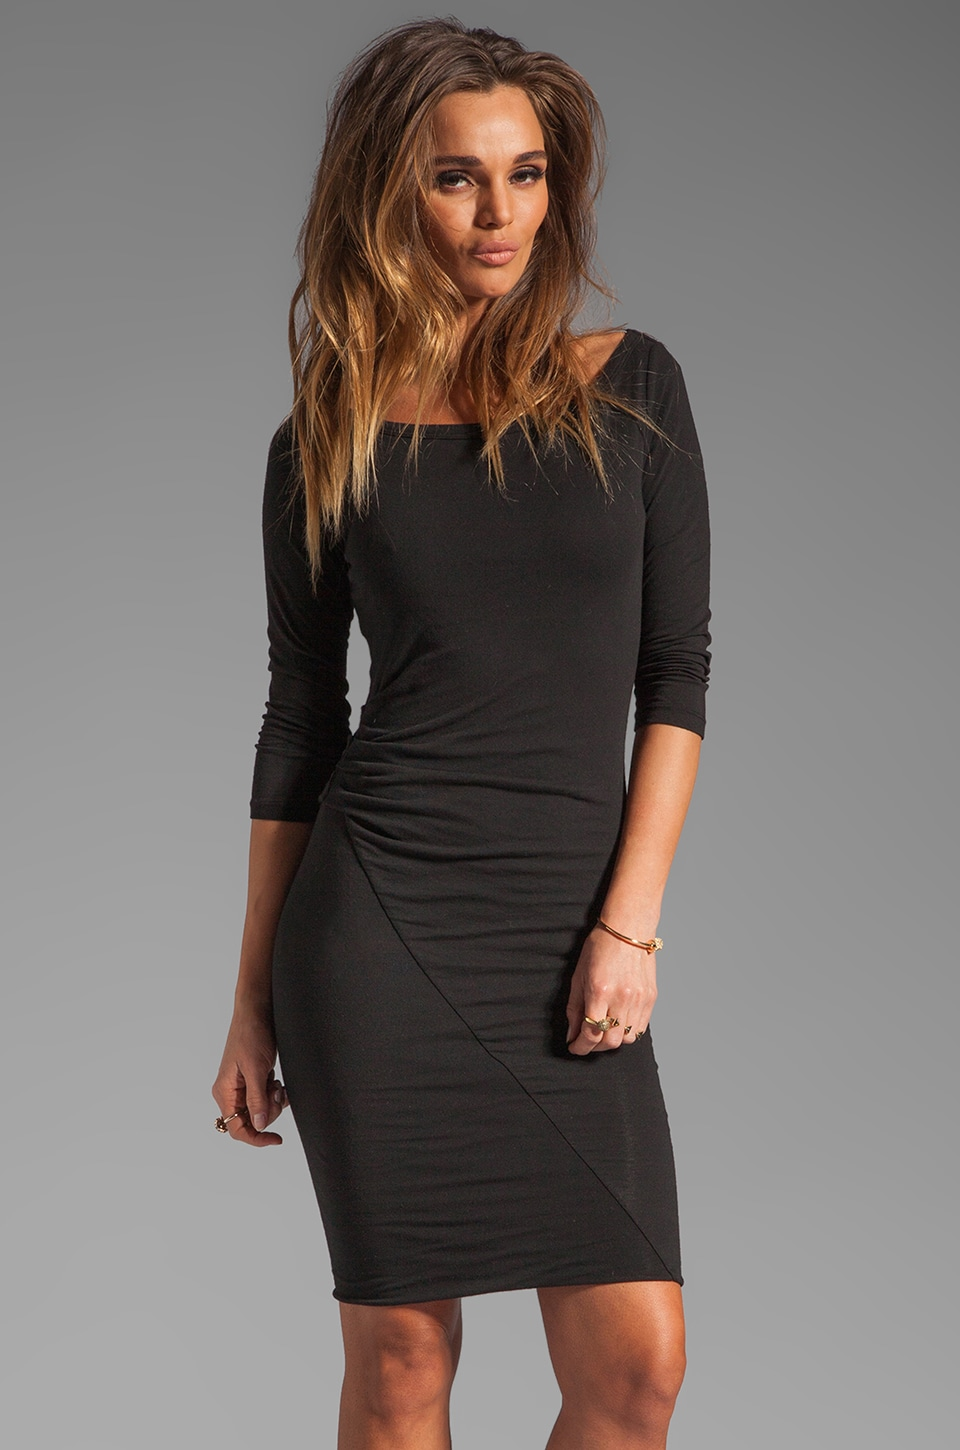 James Perse Asymmetrical Boat Neck Dress in Black